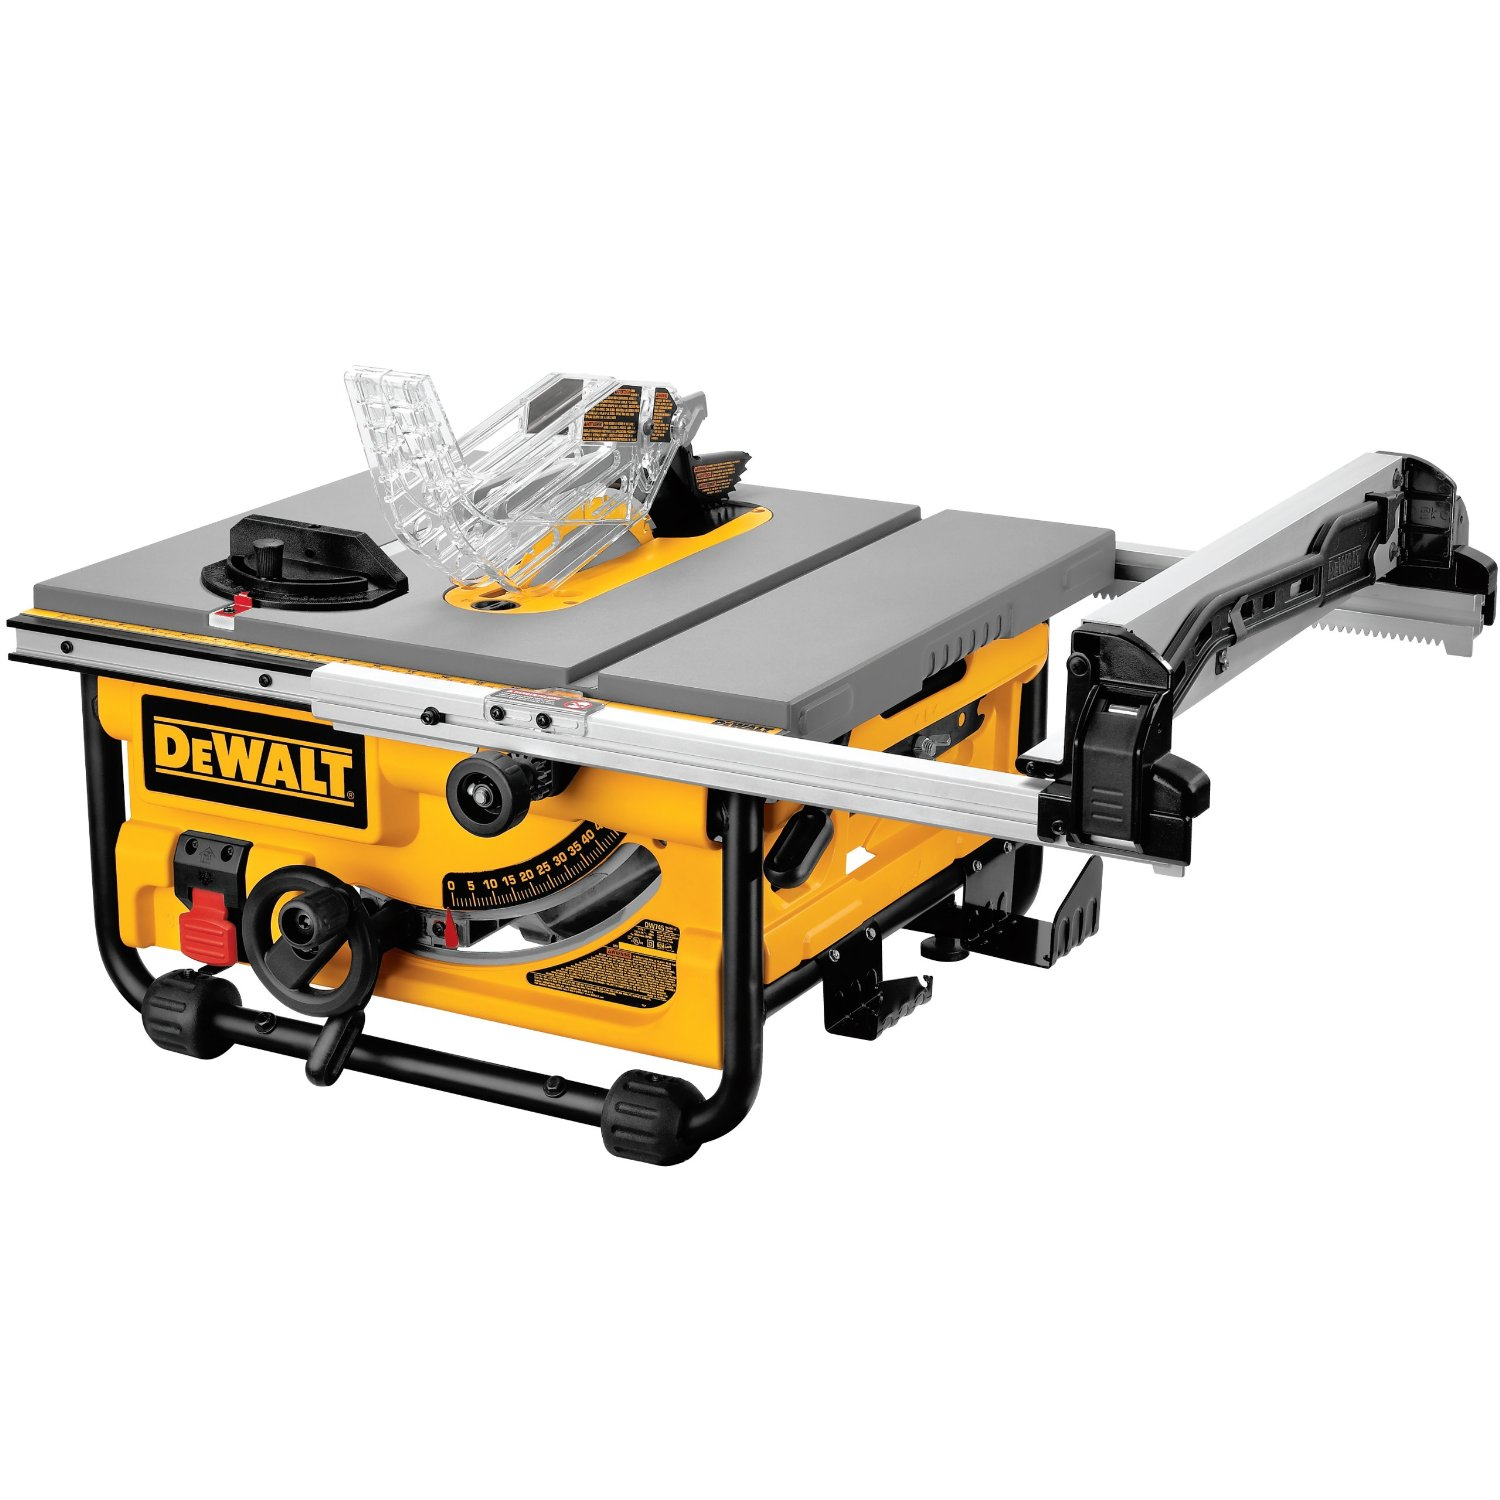 Dewalt dw745 10 inch portable table saw review for 10 portable table saw